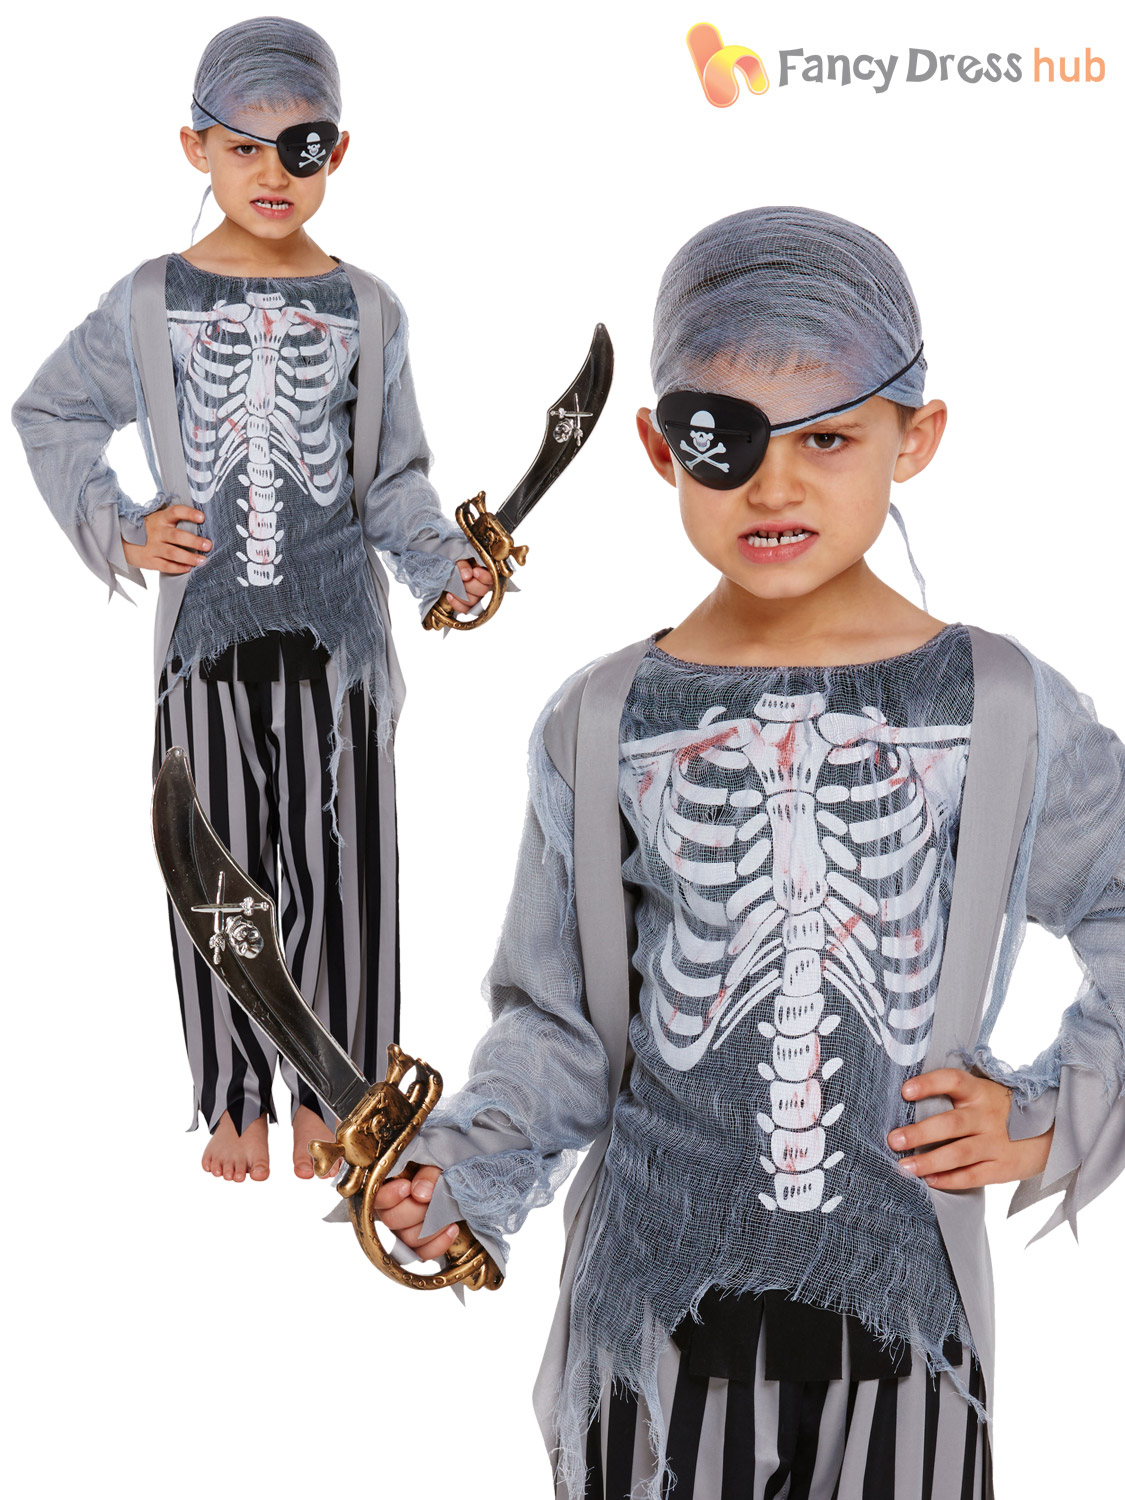 Christmas Zombie Costume.Details About Boys Zombie Pirate Costume Kids Ghost Zombie Halloween Fancy Dress Childrens